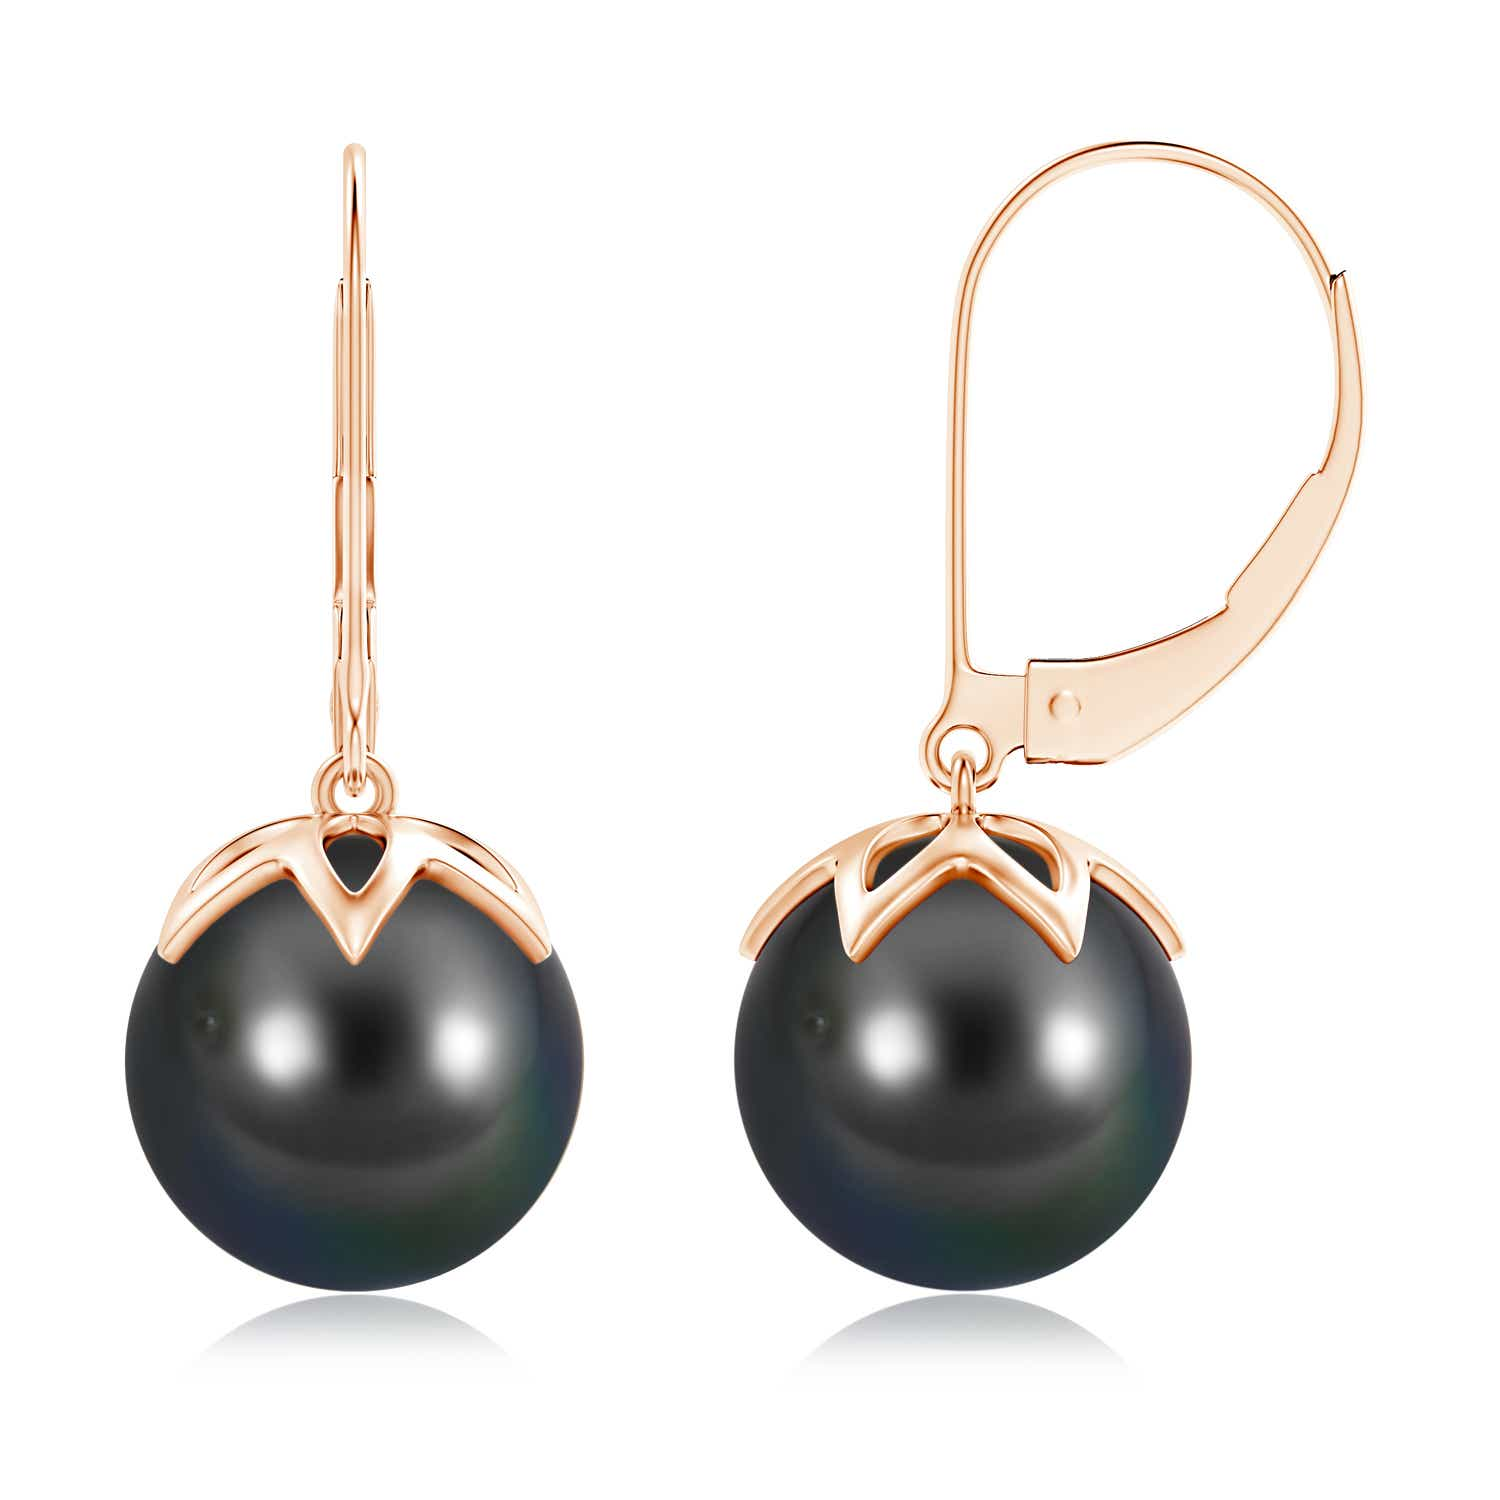 10mm-Tahitian-Cultured-Pearl-Lever-back-Drop-Earrings-14K-White-Gold